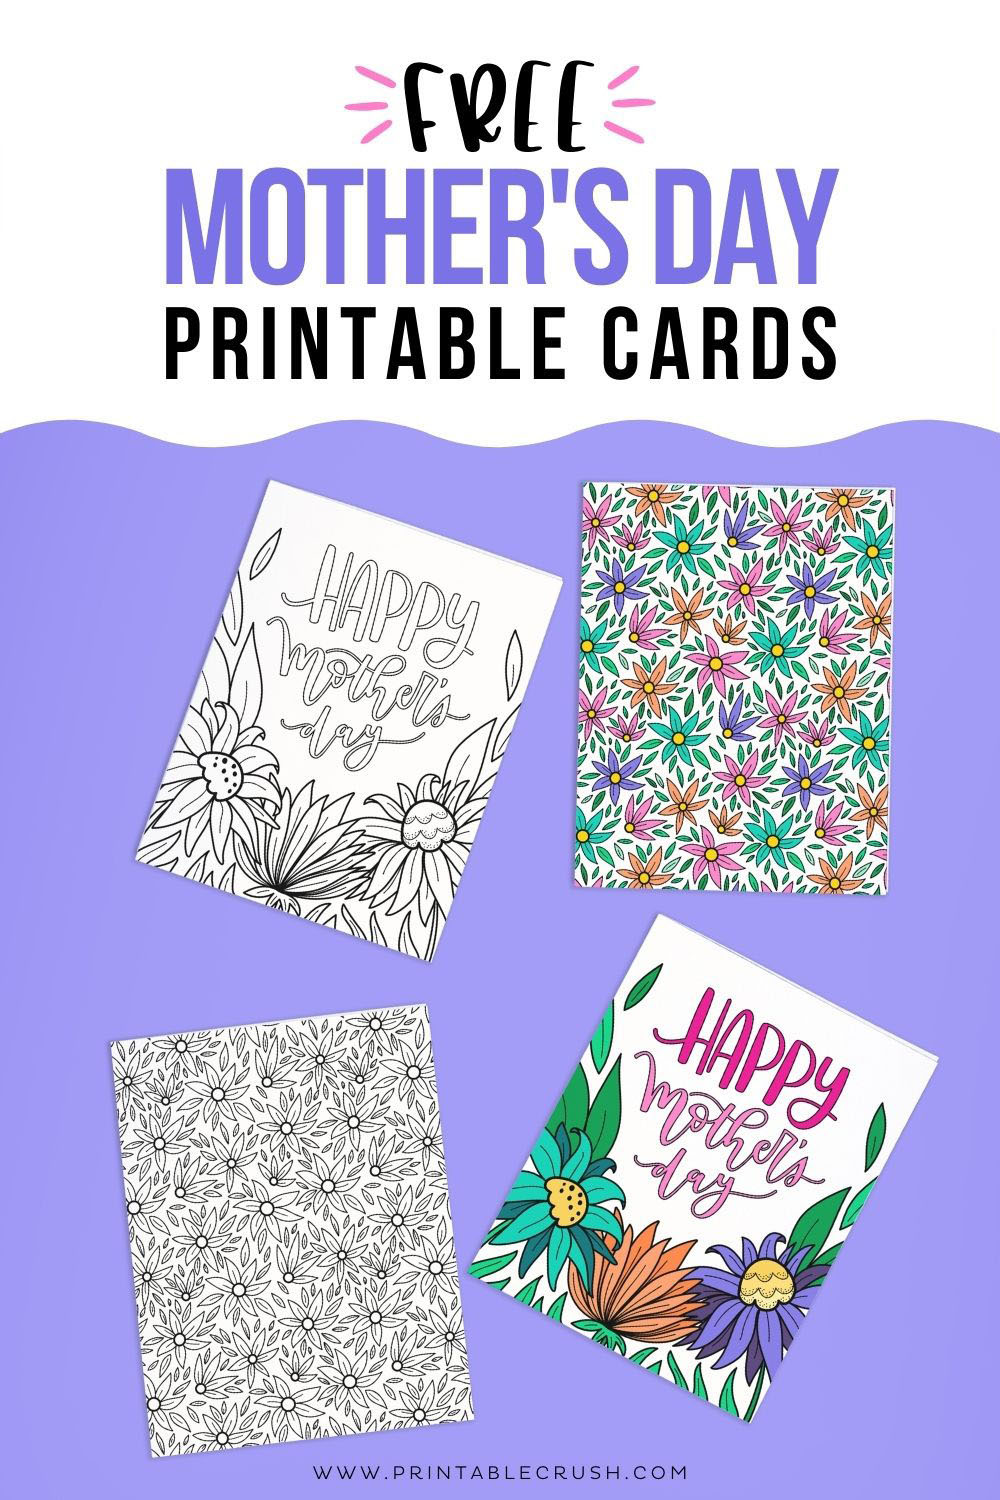 Free Printable Mother's Day Coloring Page - Mother's Day Cards - Color in Mother's Day Cards - Printable Crush